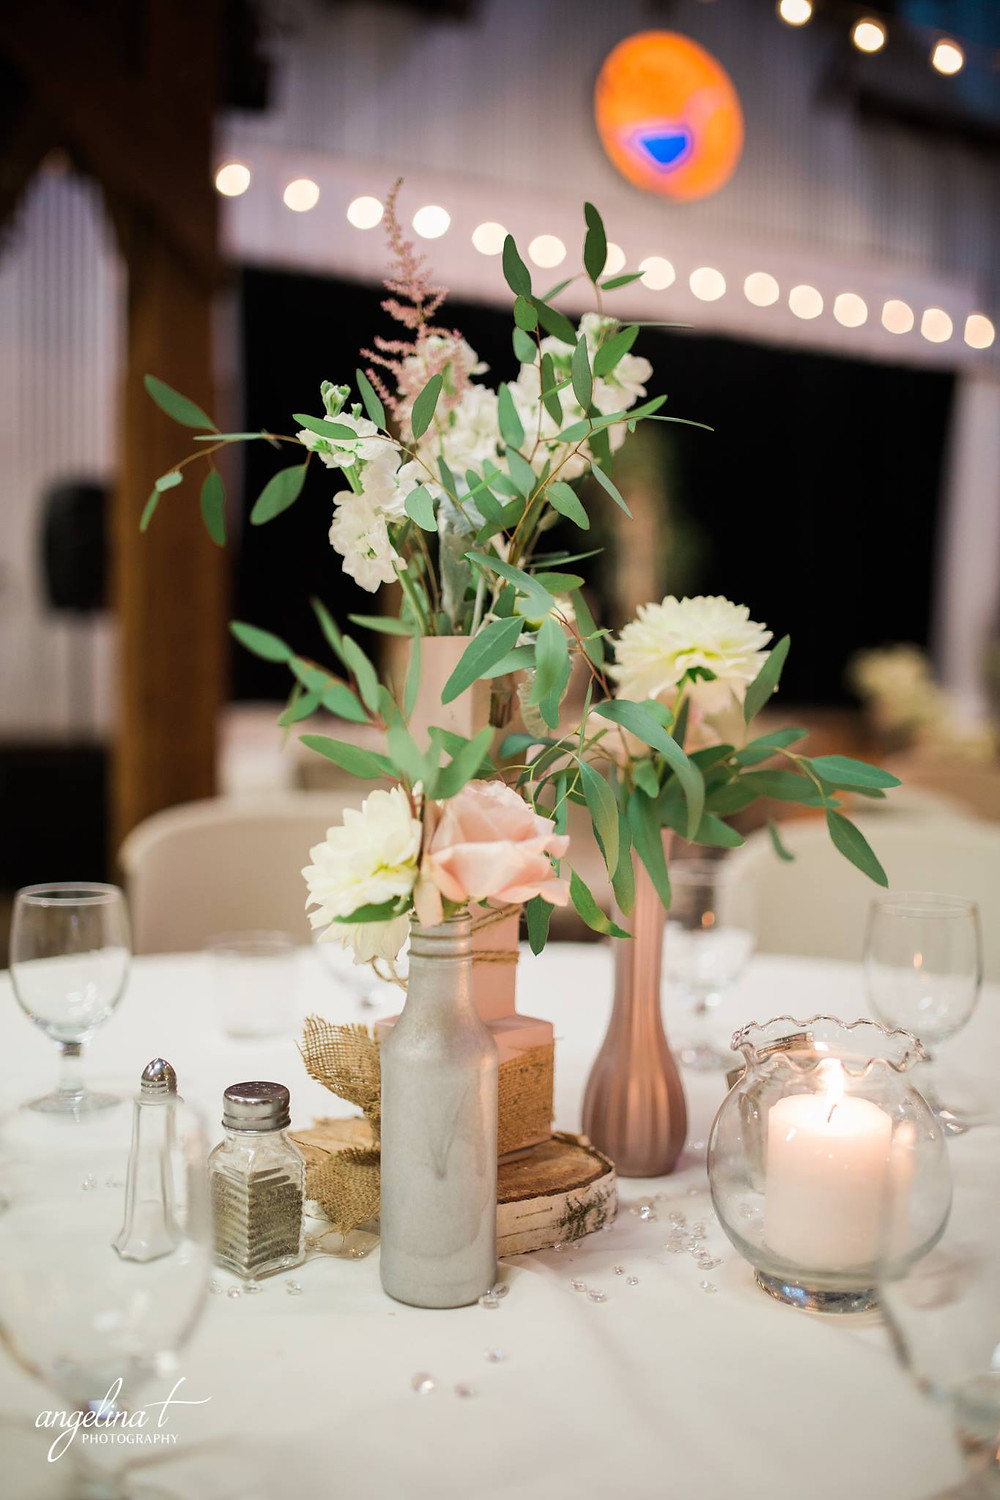 Rustic, elegant centerpiece by Visual Impact Design | Angelina T Photography